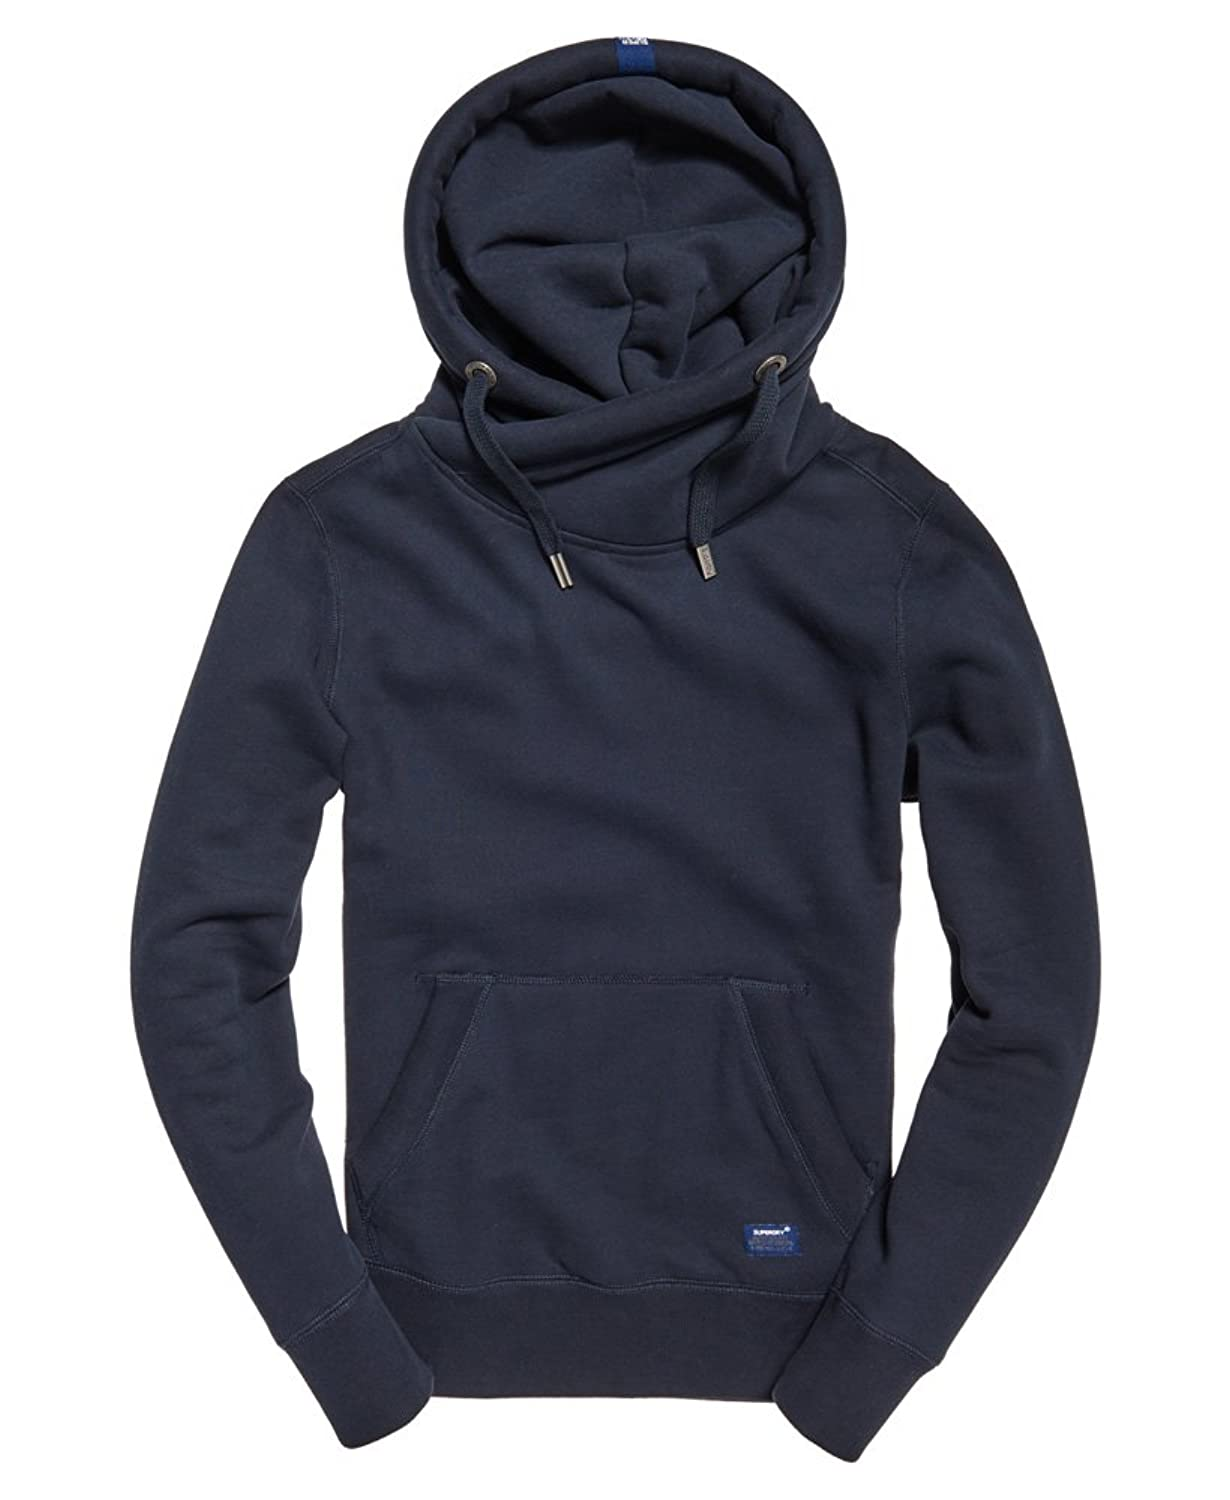 Superdry SWEATER メンズ B077GD11Z1  Eclipse Navy XX-Large